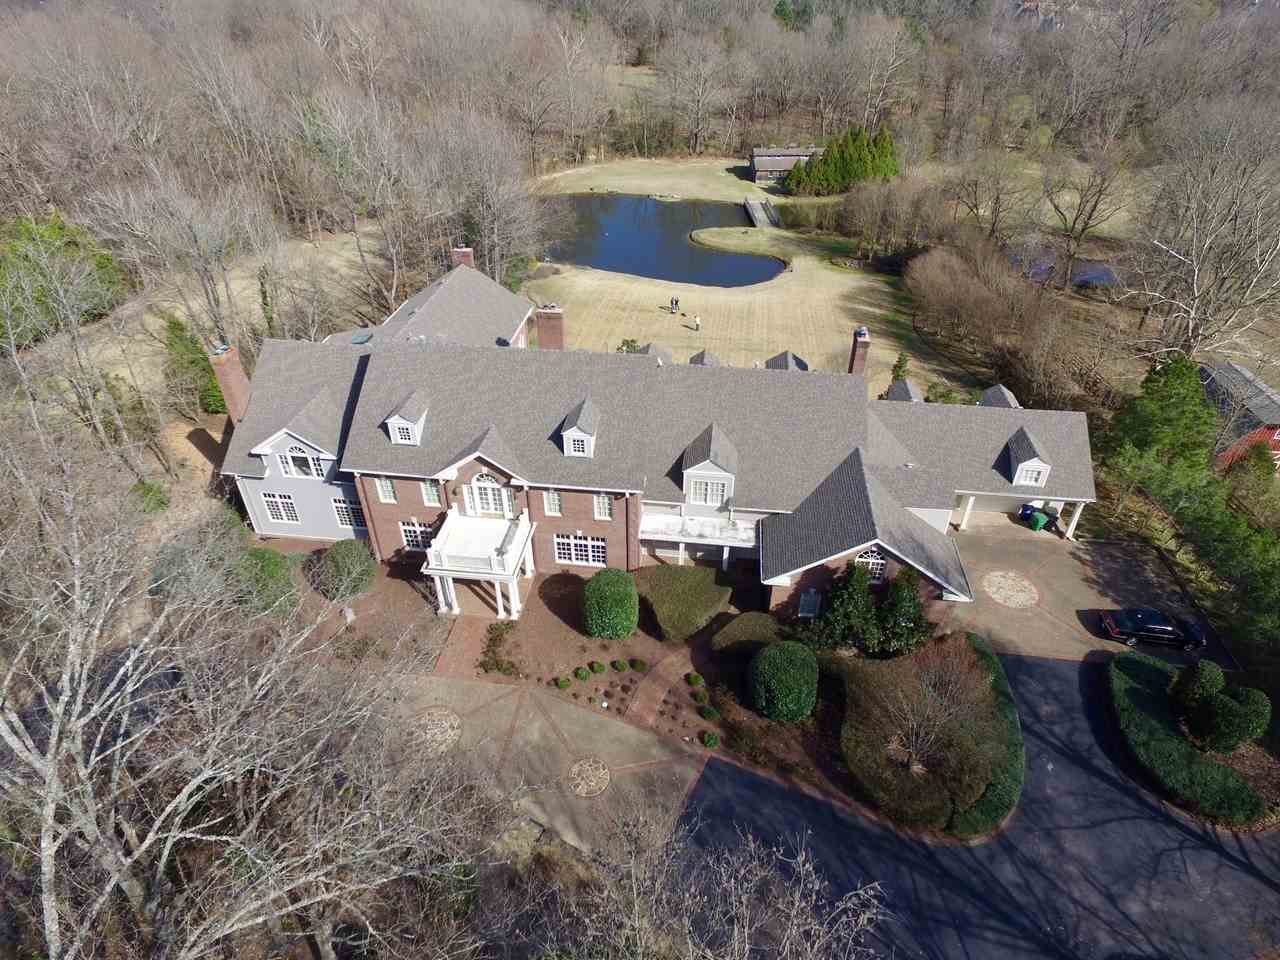 2400 FOREST HILL-IRENE RD, Germantown, TN 38139